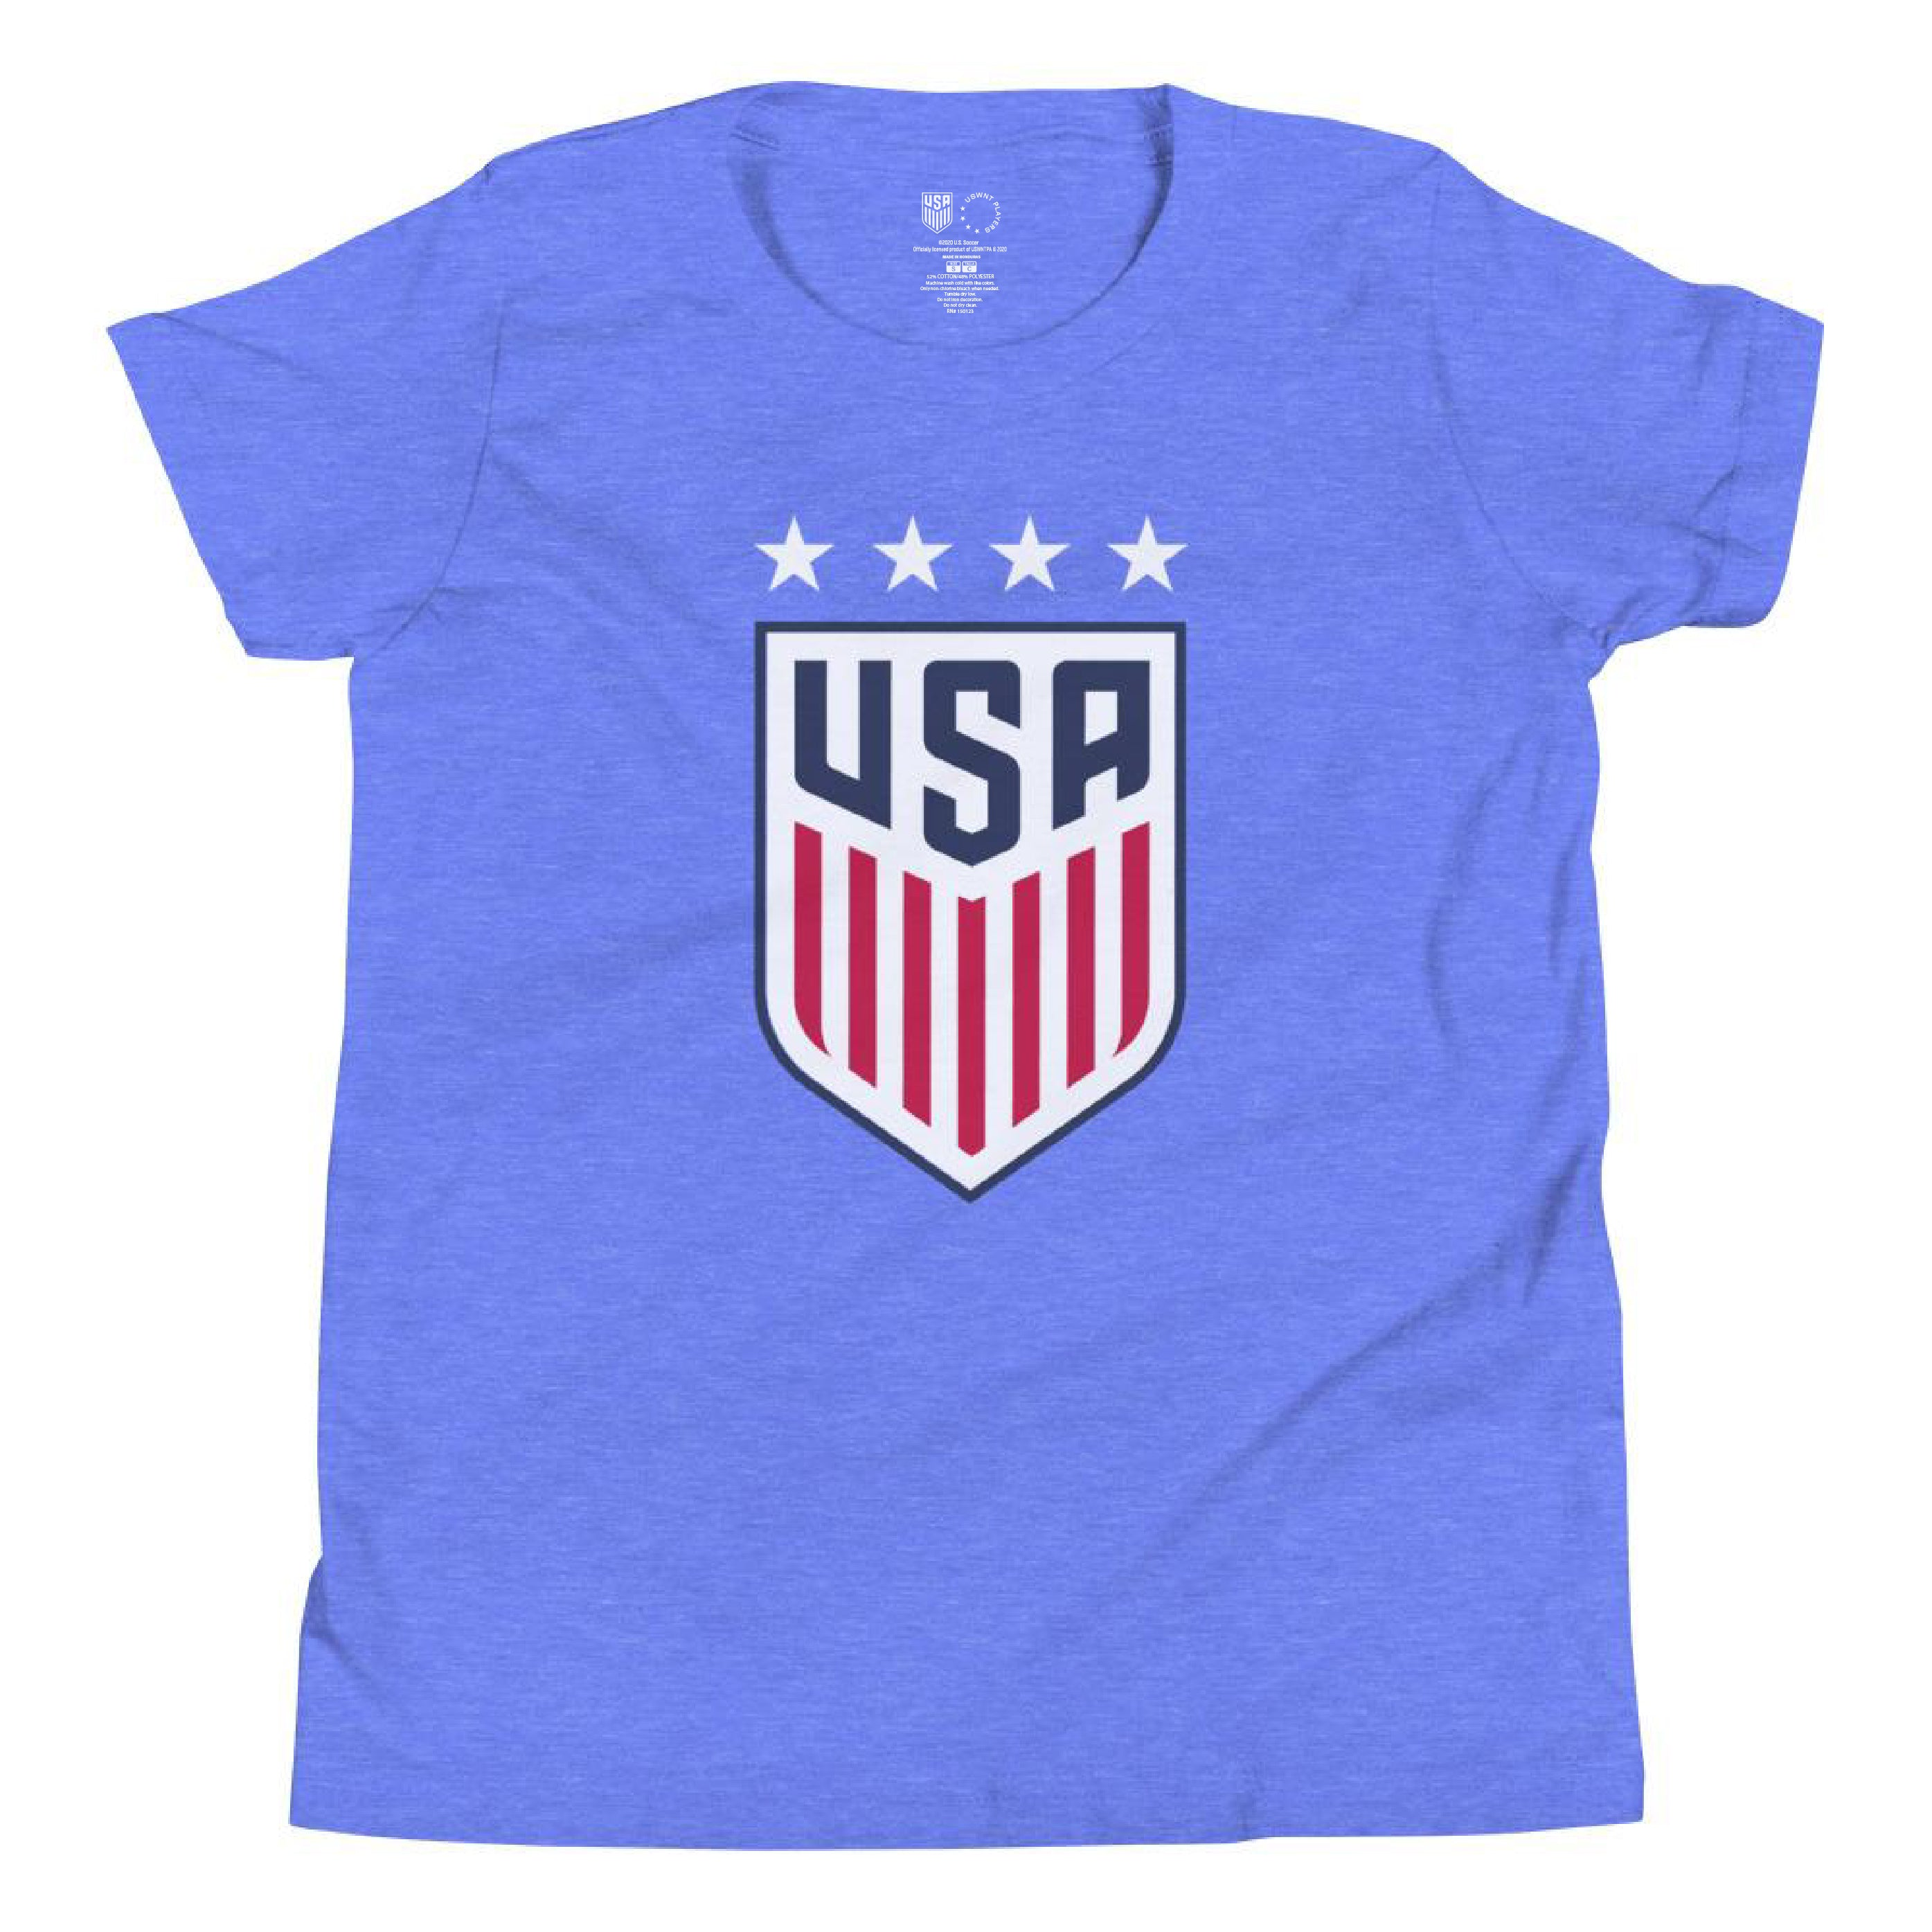 Tiffeny Milbrett 1999 Youth USWNT 4 Star T-Shirt